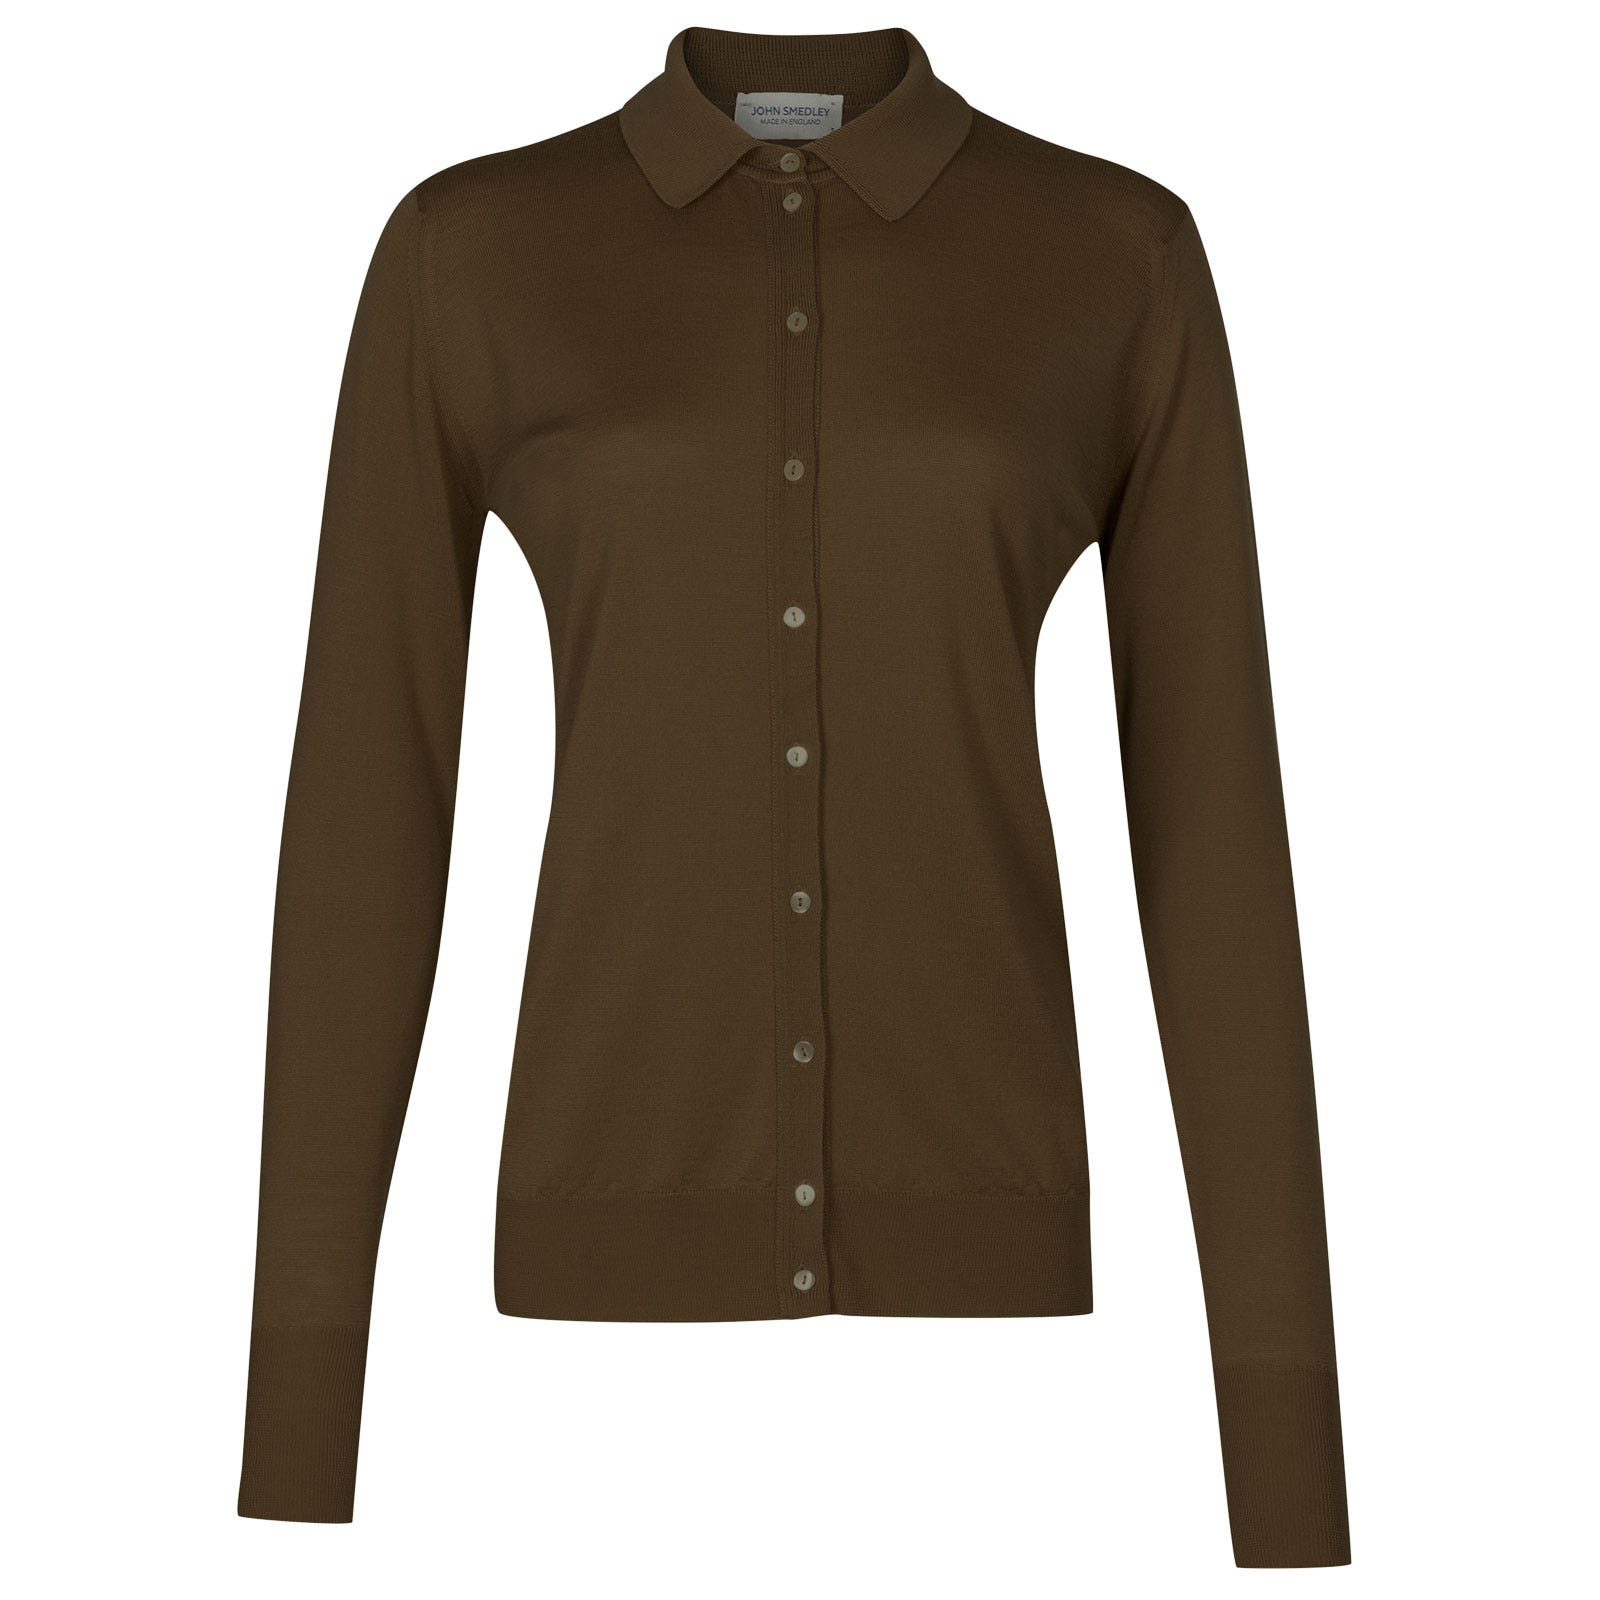 John Smedley bartley Merino Wool Shirt in Kielder Green-S